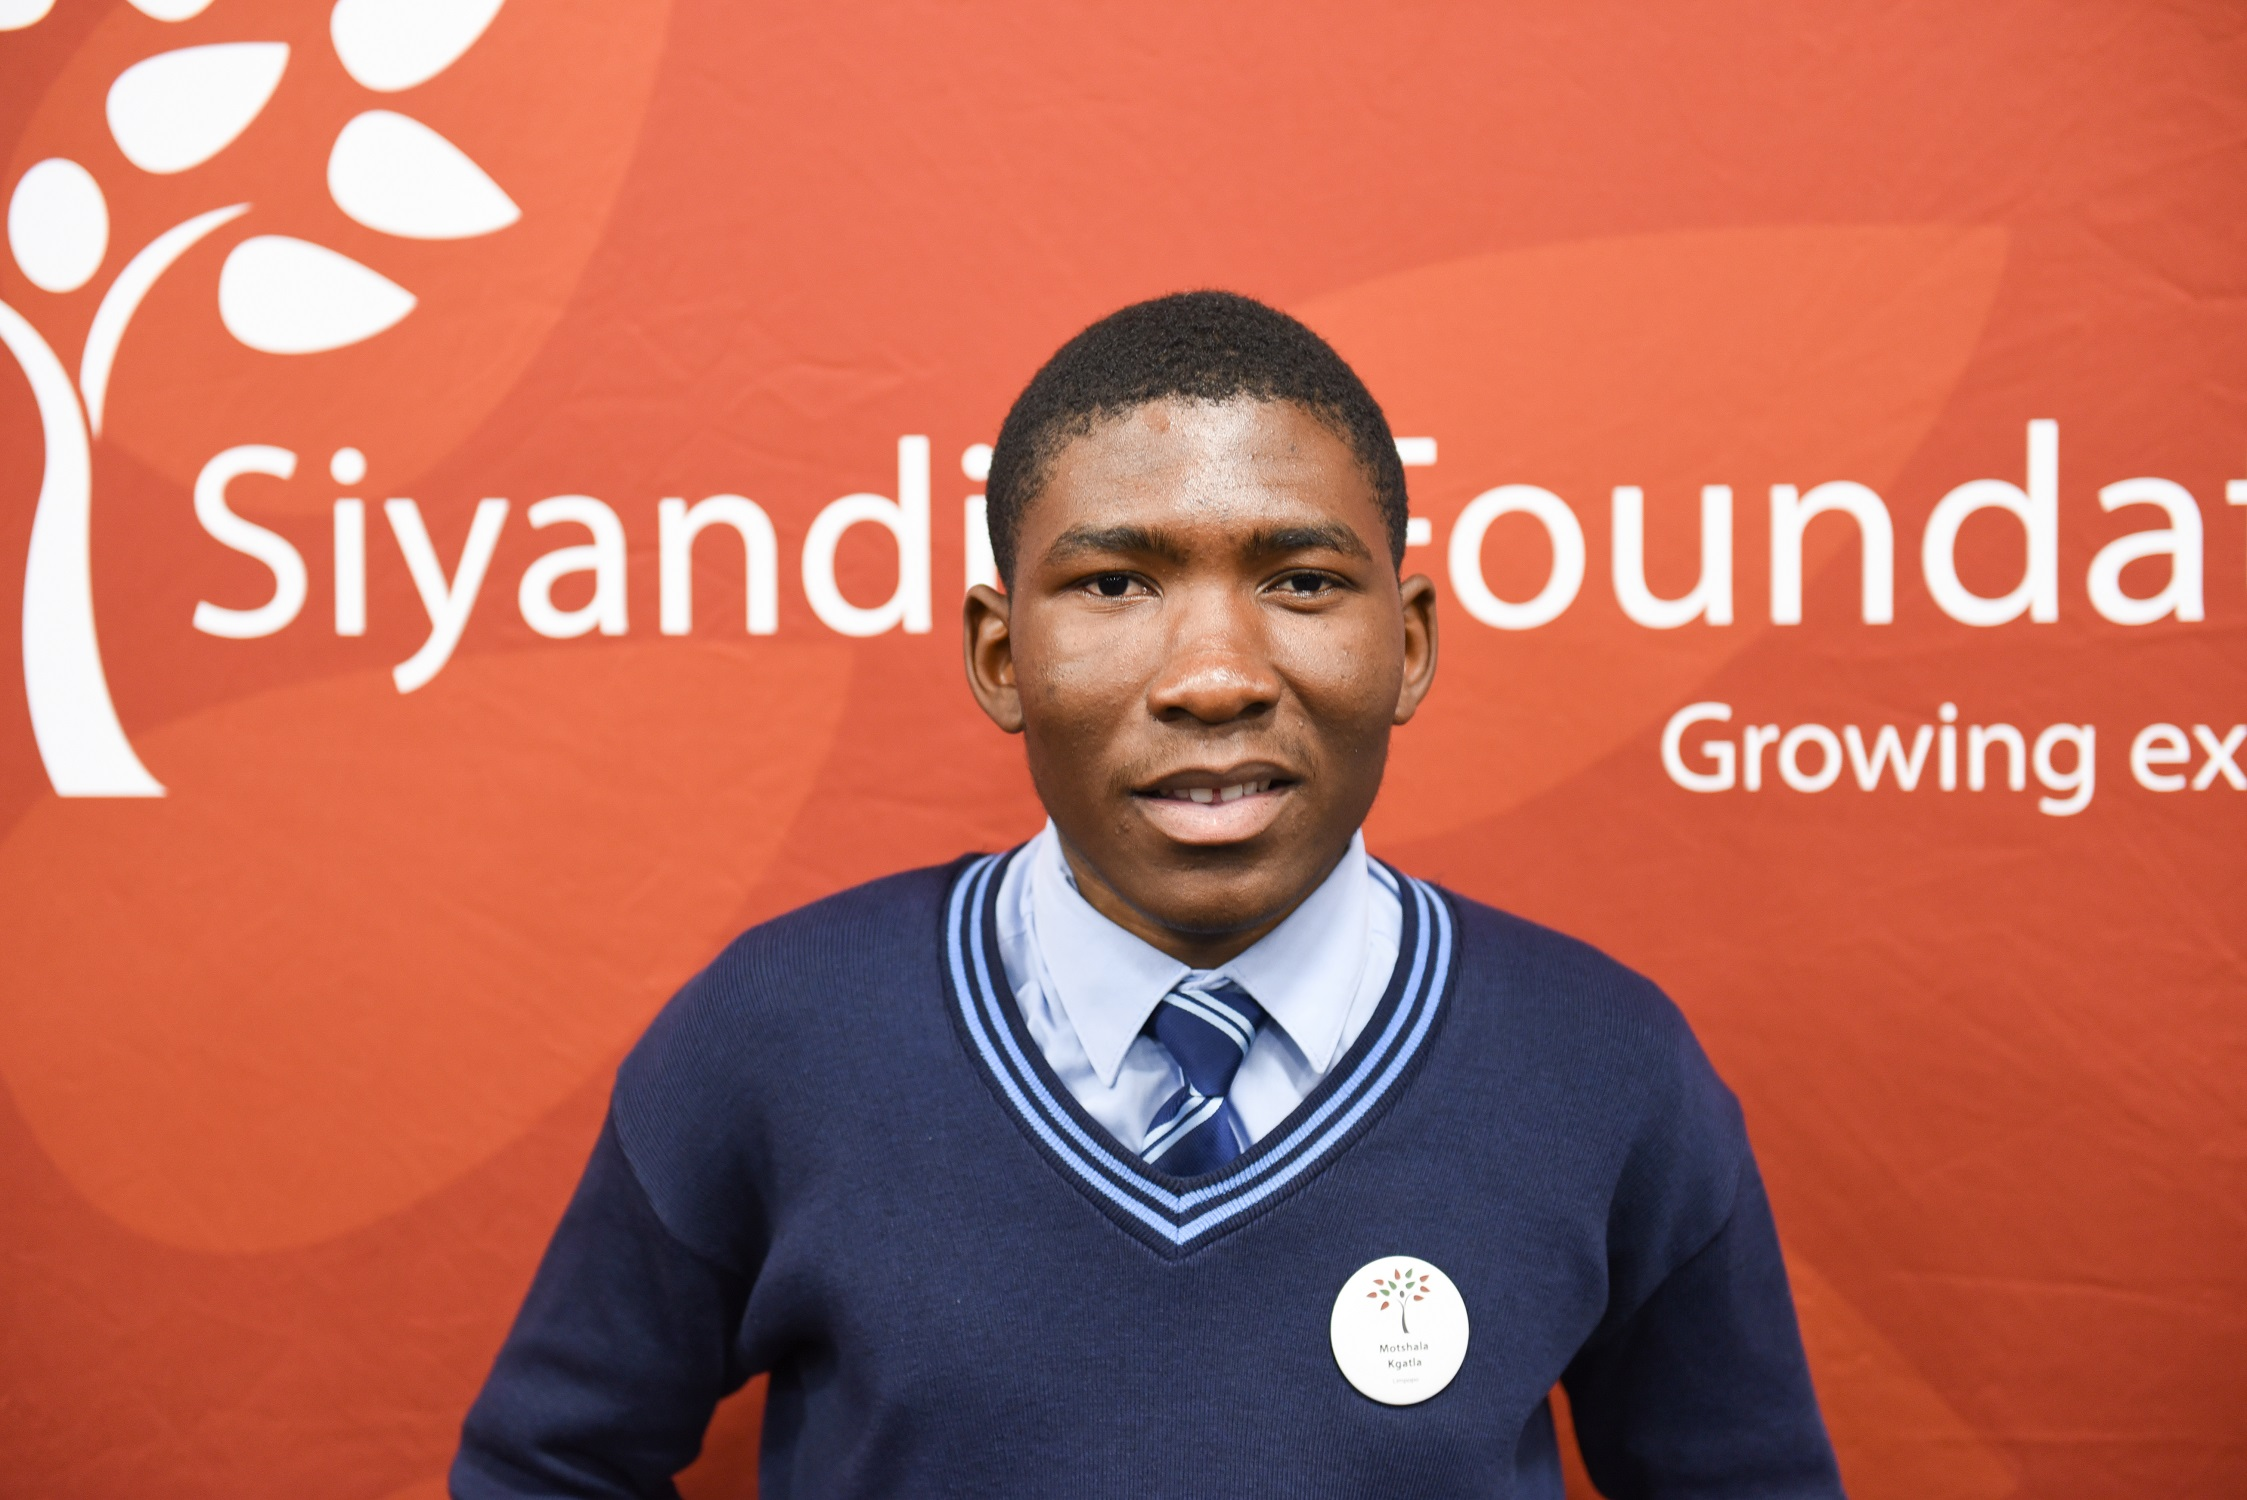 Siyandisa recipient encourages others to strive for the best!